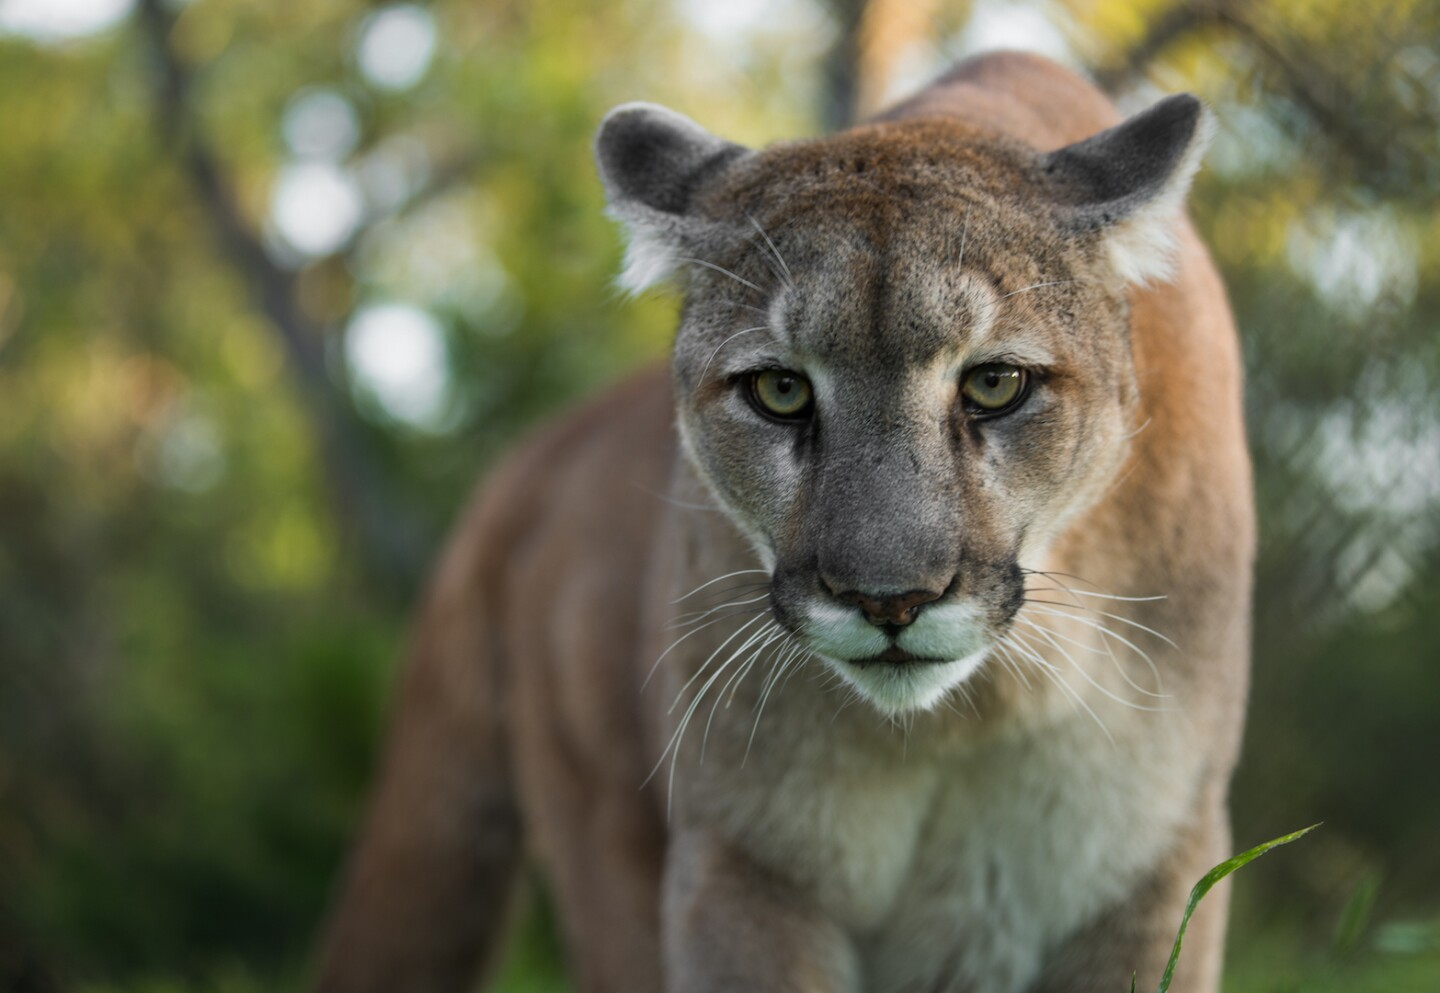 Mountain Lion looking at camera | Photo: Ben Masters, iStock